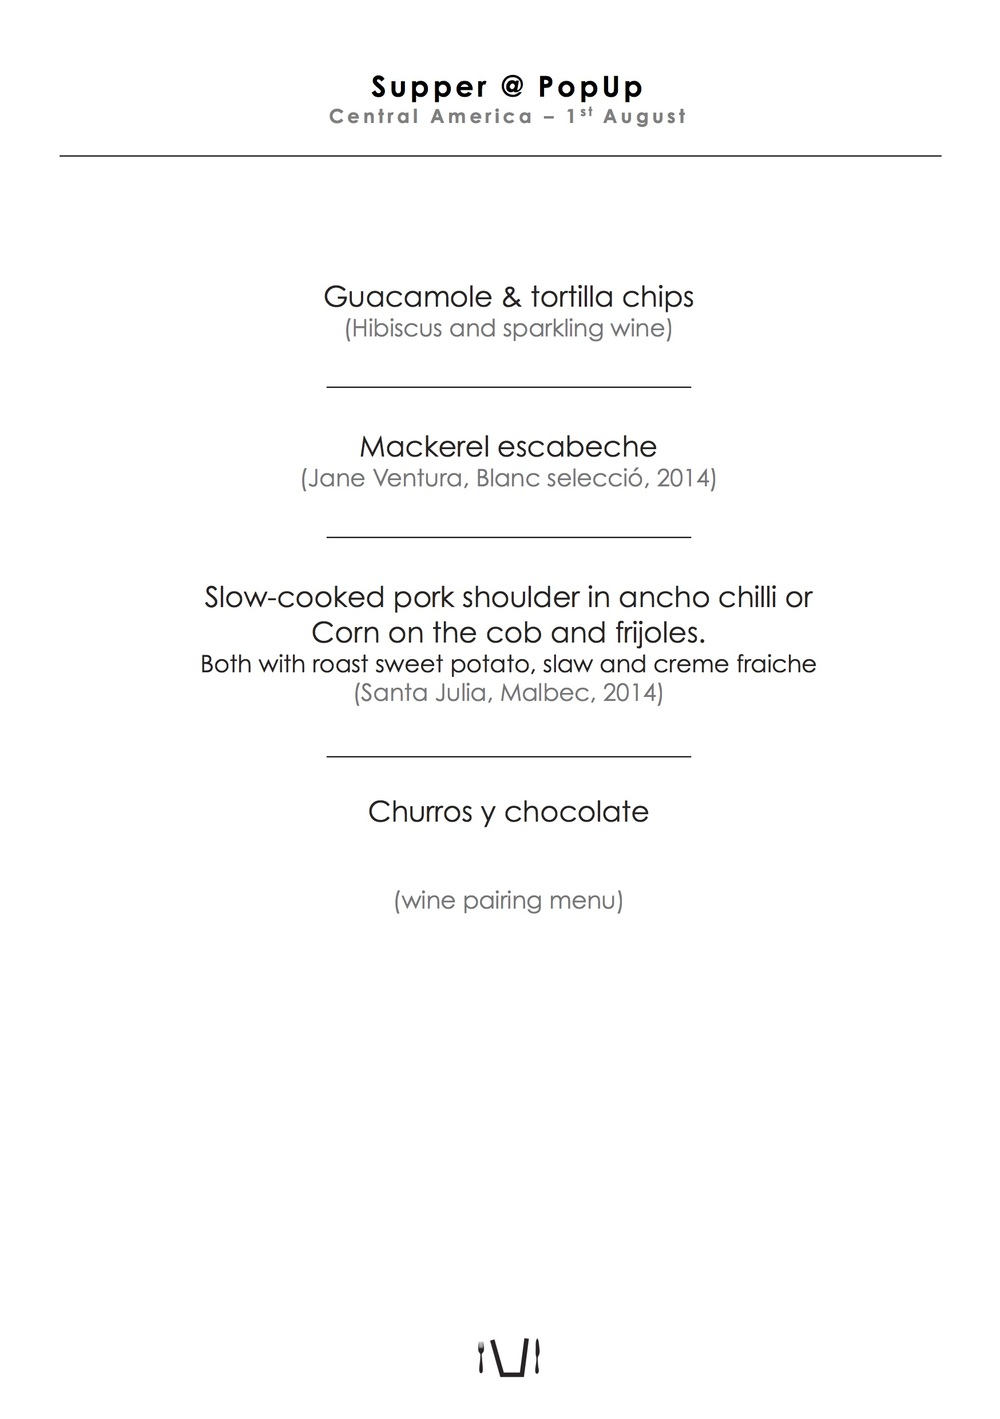 2015-07 supper popup printed table menu central am.jpg